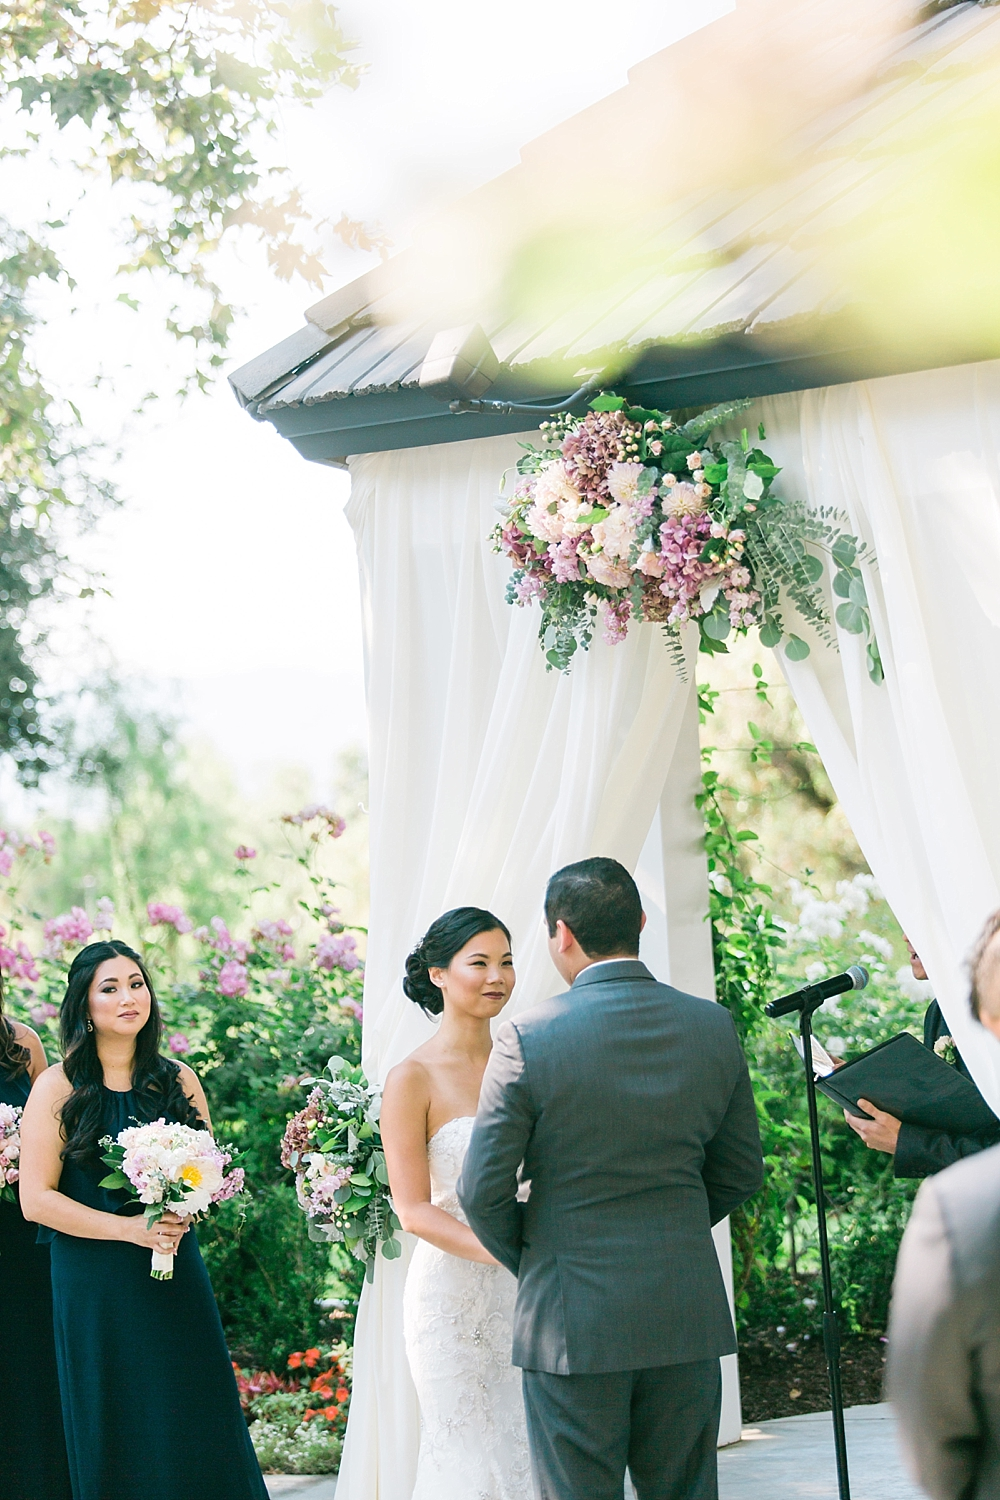 Summit-House-Fullerton-wedding-photographer-Carissa-Woo-Photography-Laura-and-Eric_0040.jpg